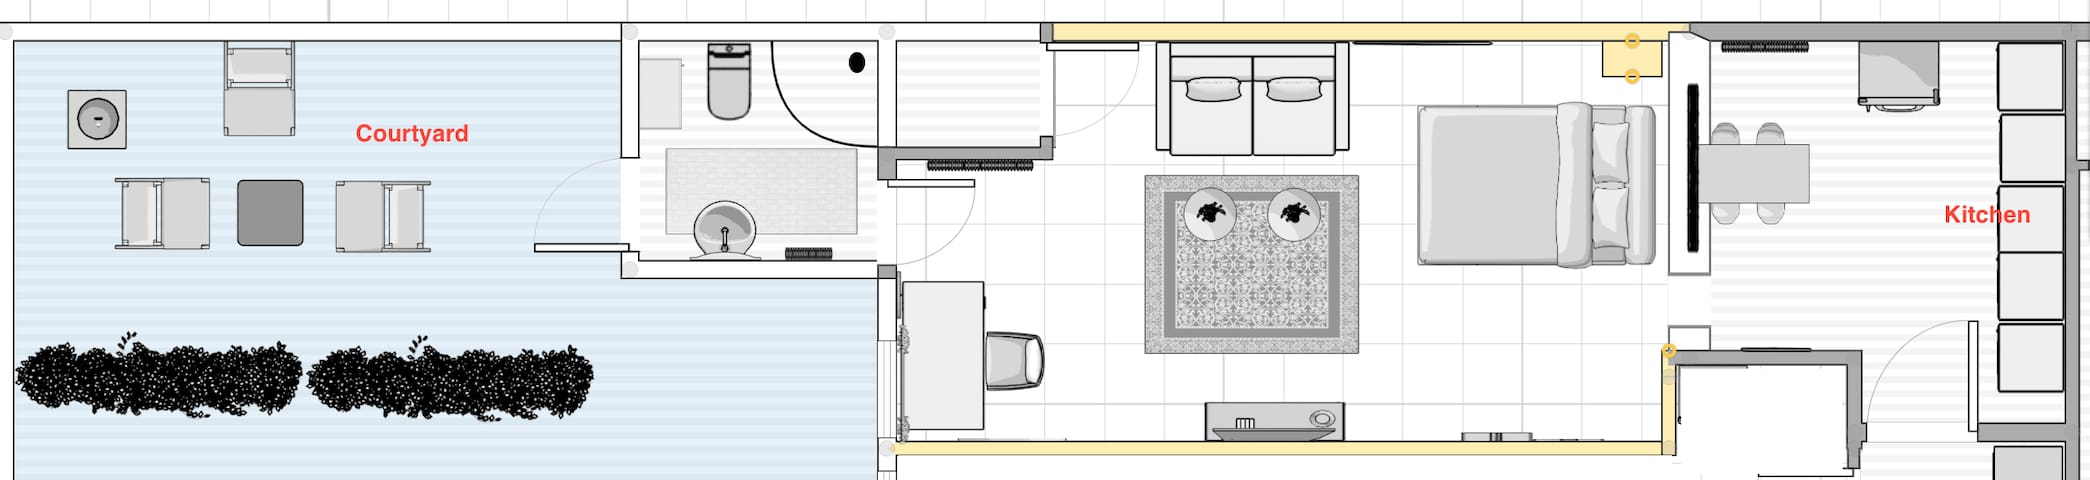 Layout of the studio.  30 sq. Meters (about 300sq Ft) Not including the Courtyard.